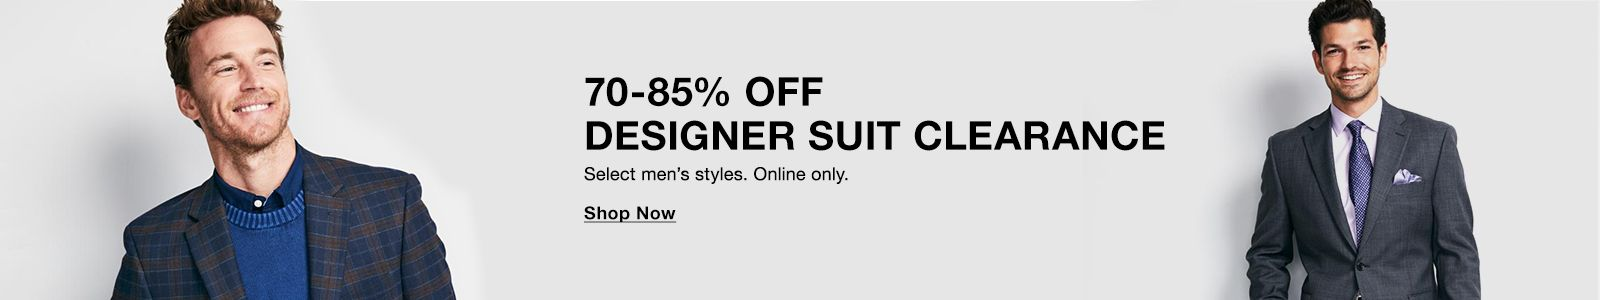 70-85% Off Designer Suit Clearance, Select men's styles, Online only, Shop Now